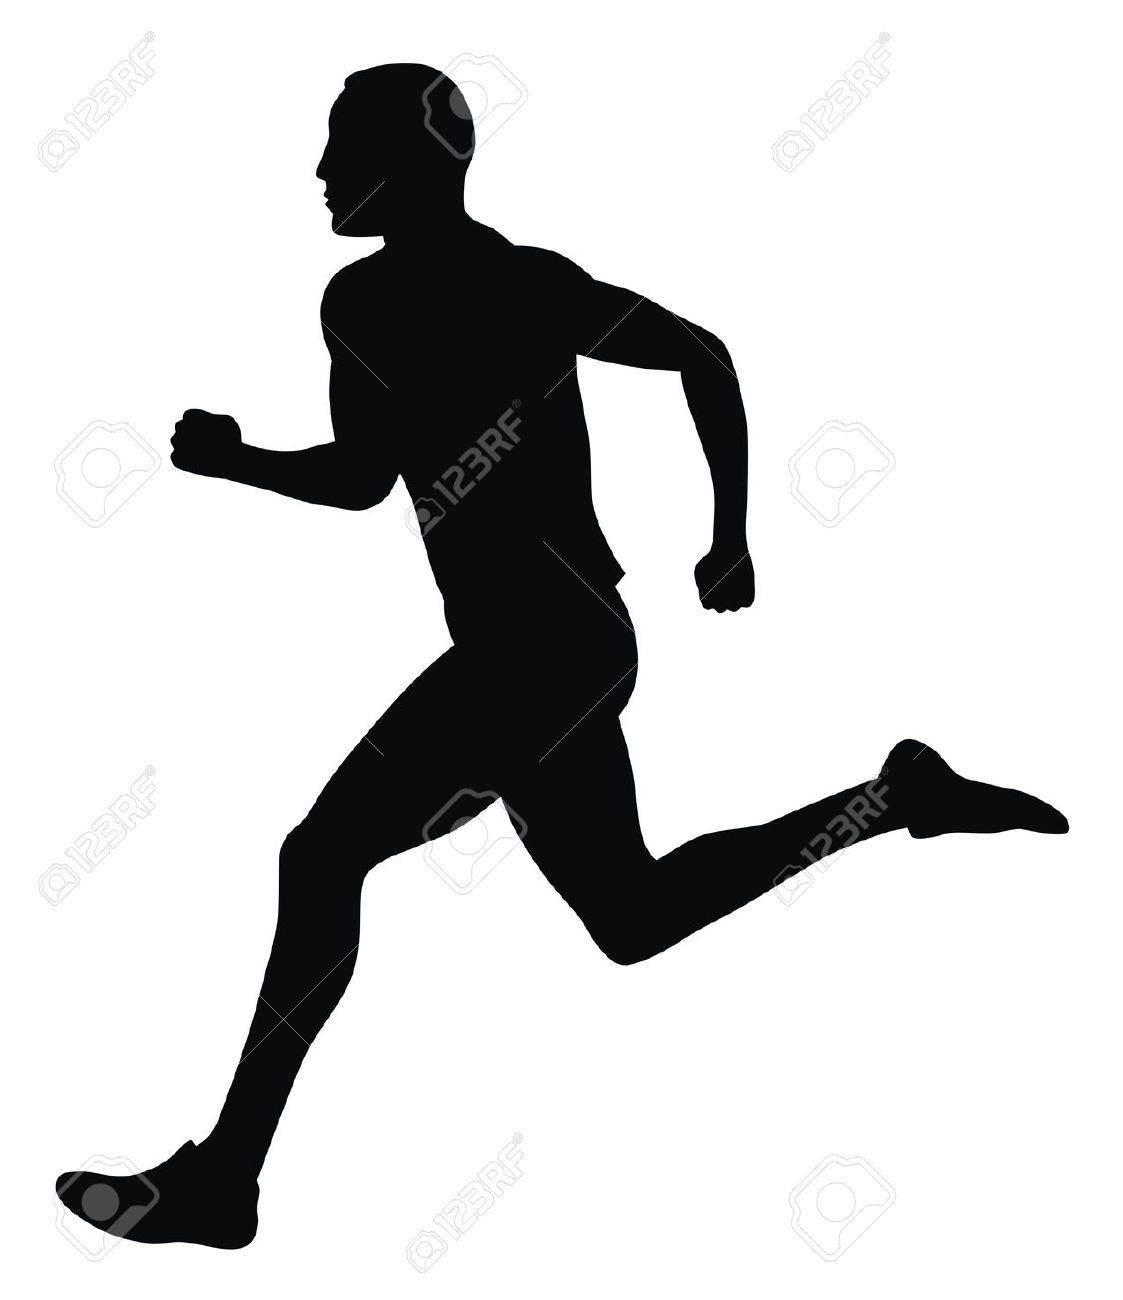 4506982-Abstract-vector-illustration-of-marathon-runner ...